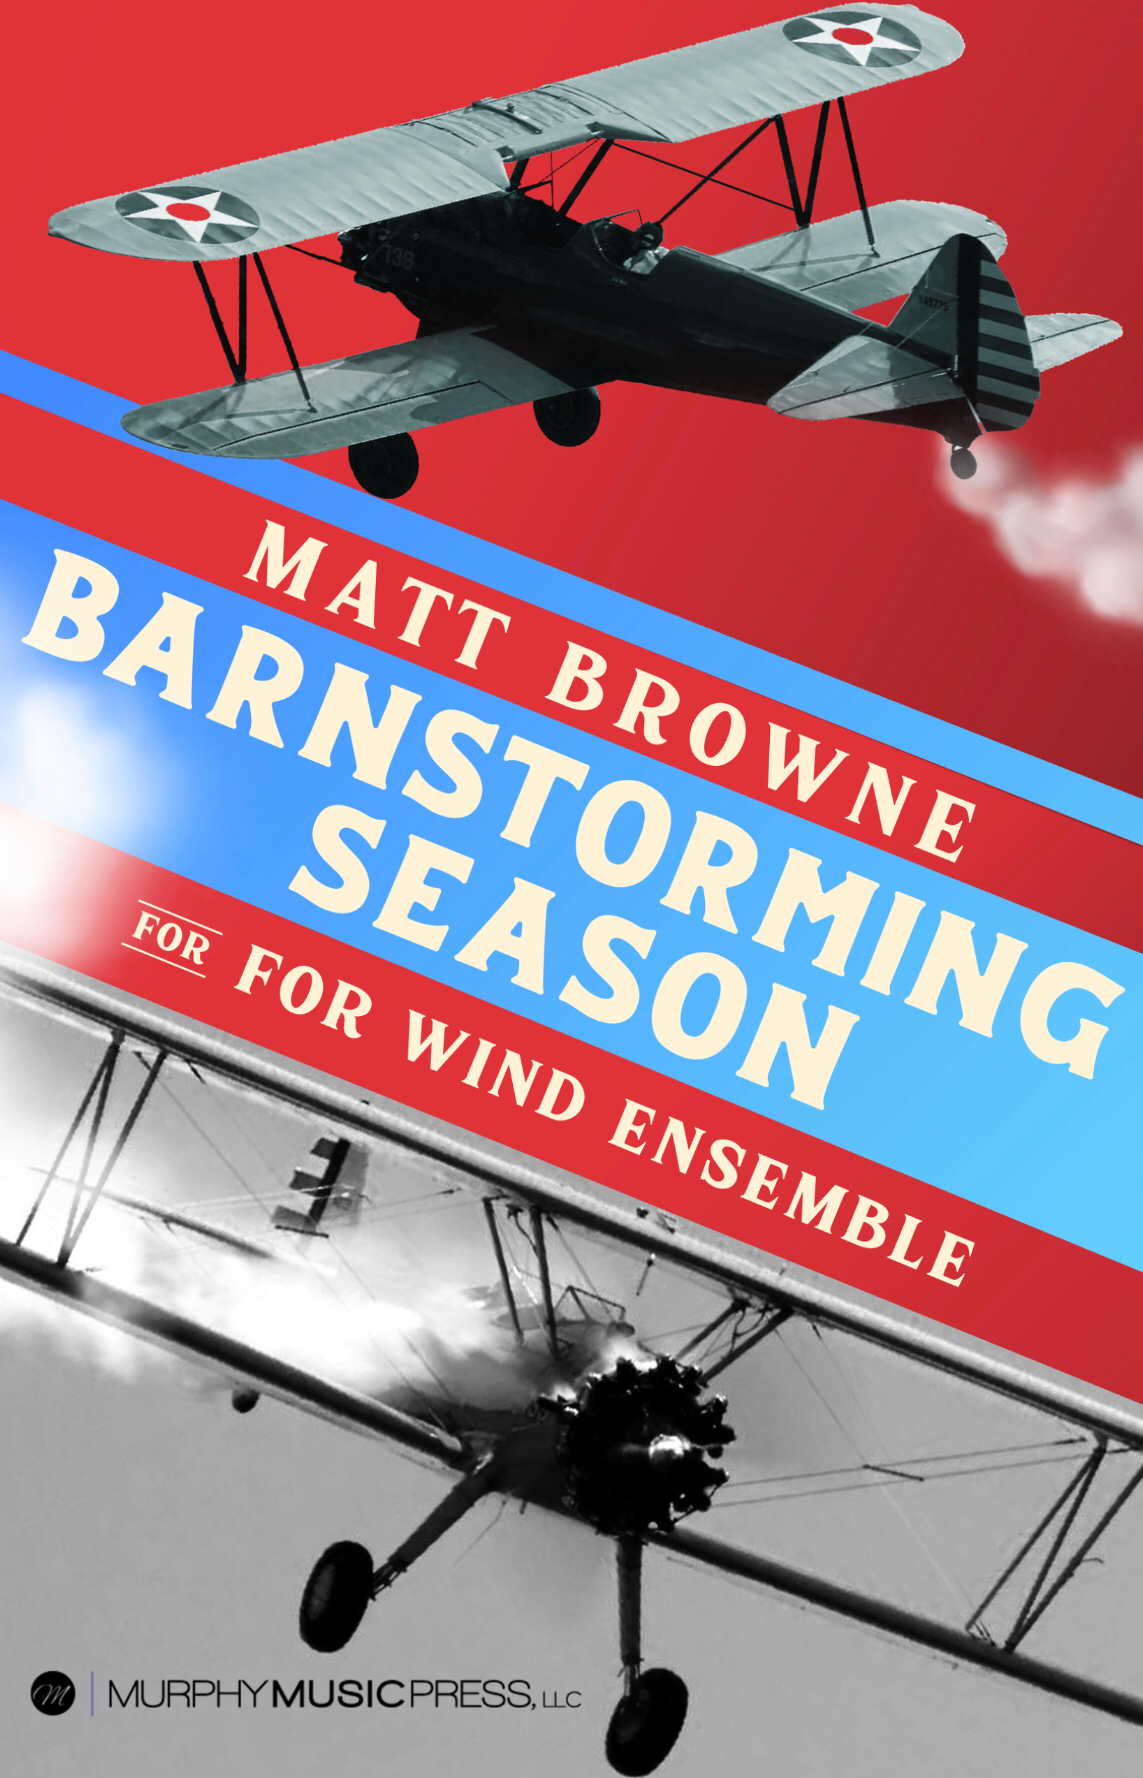 Barnstorming Season by Matthew Browne